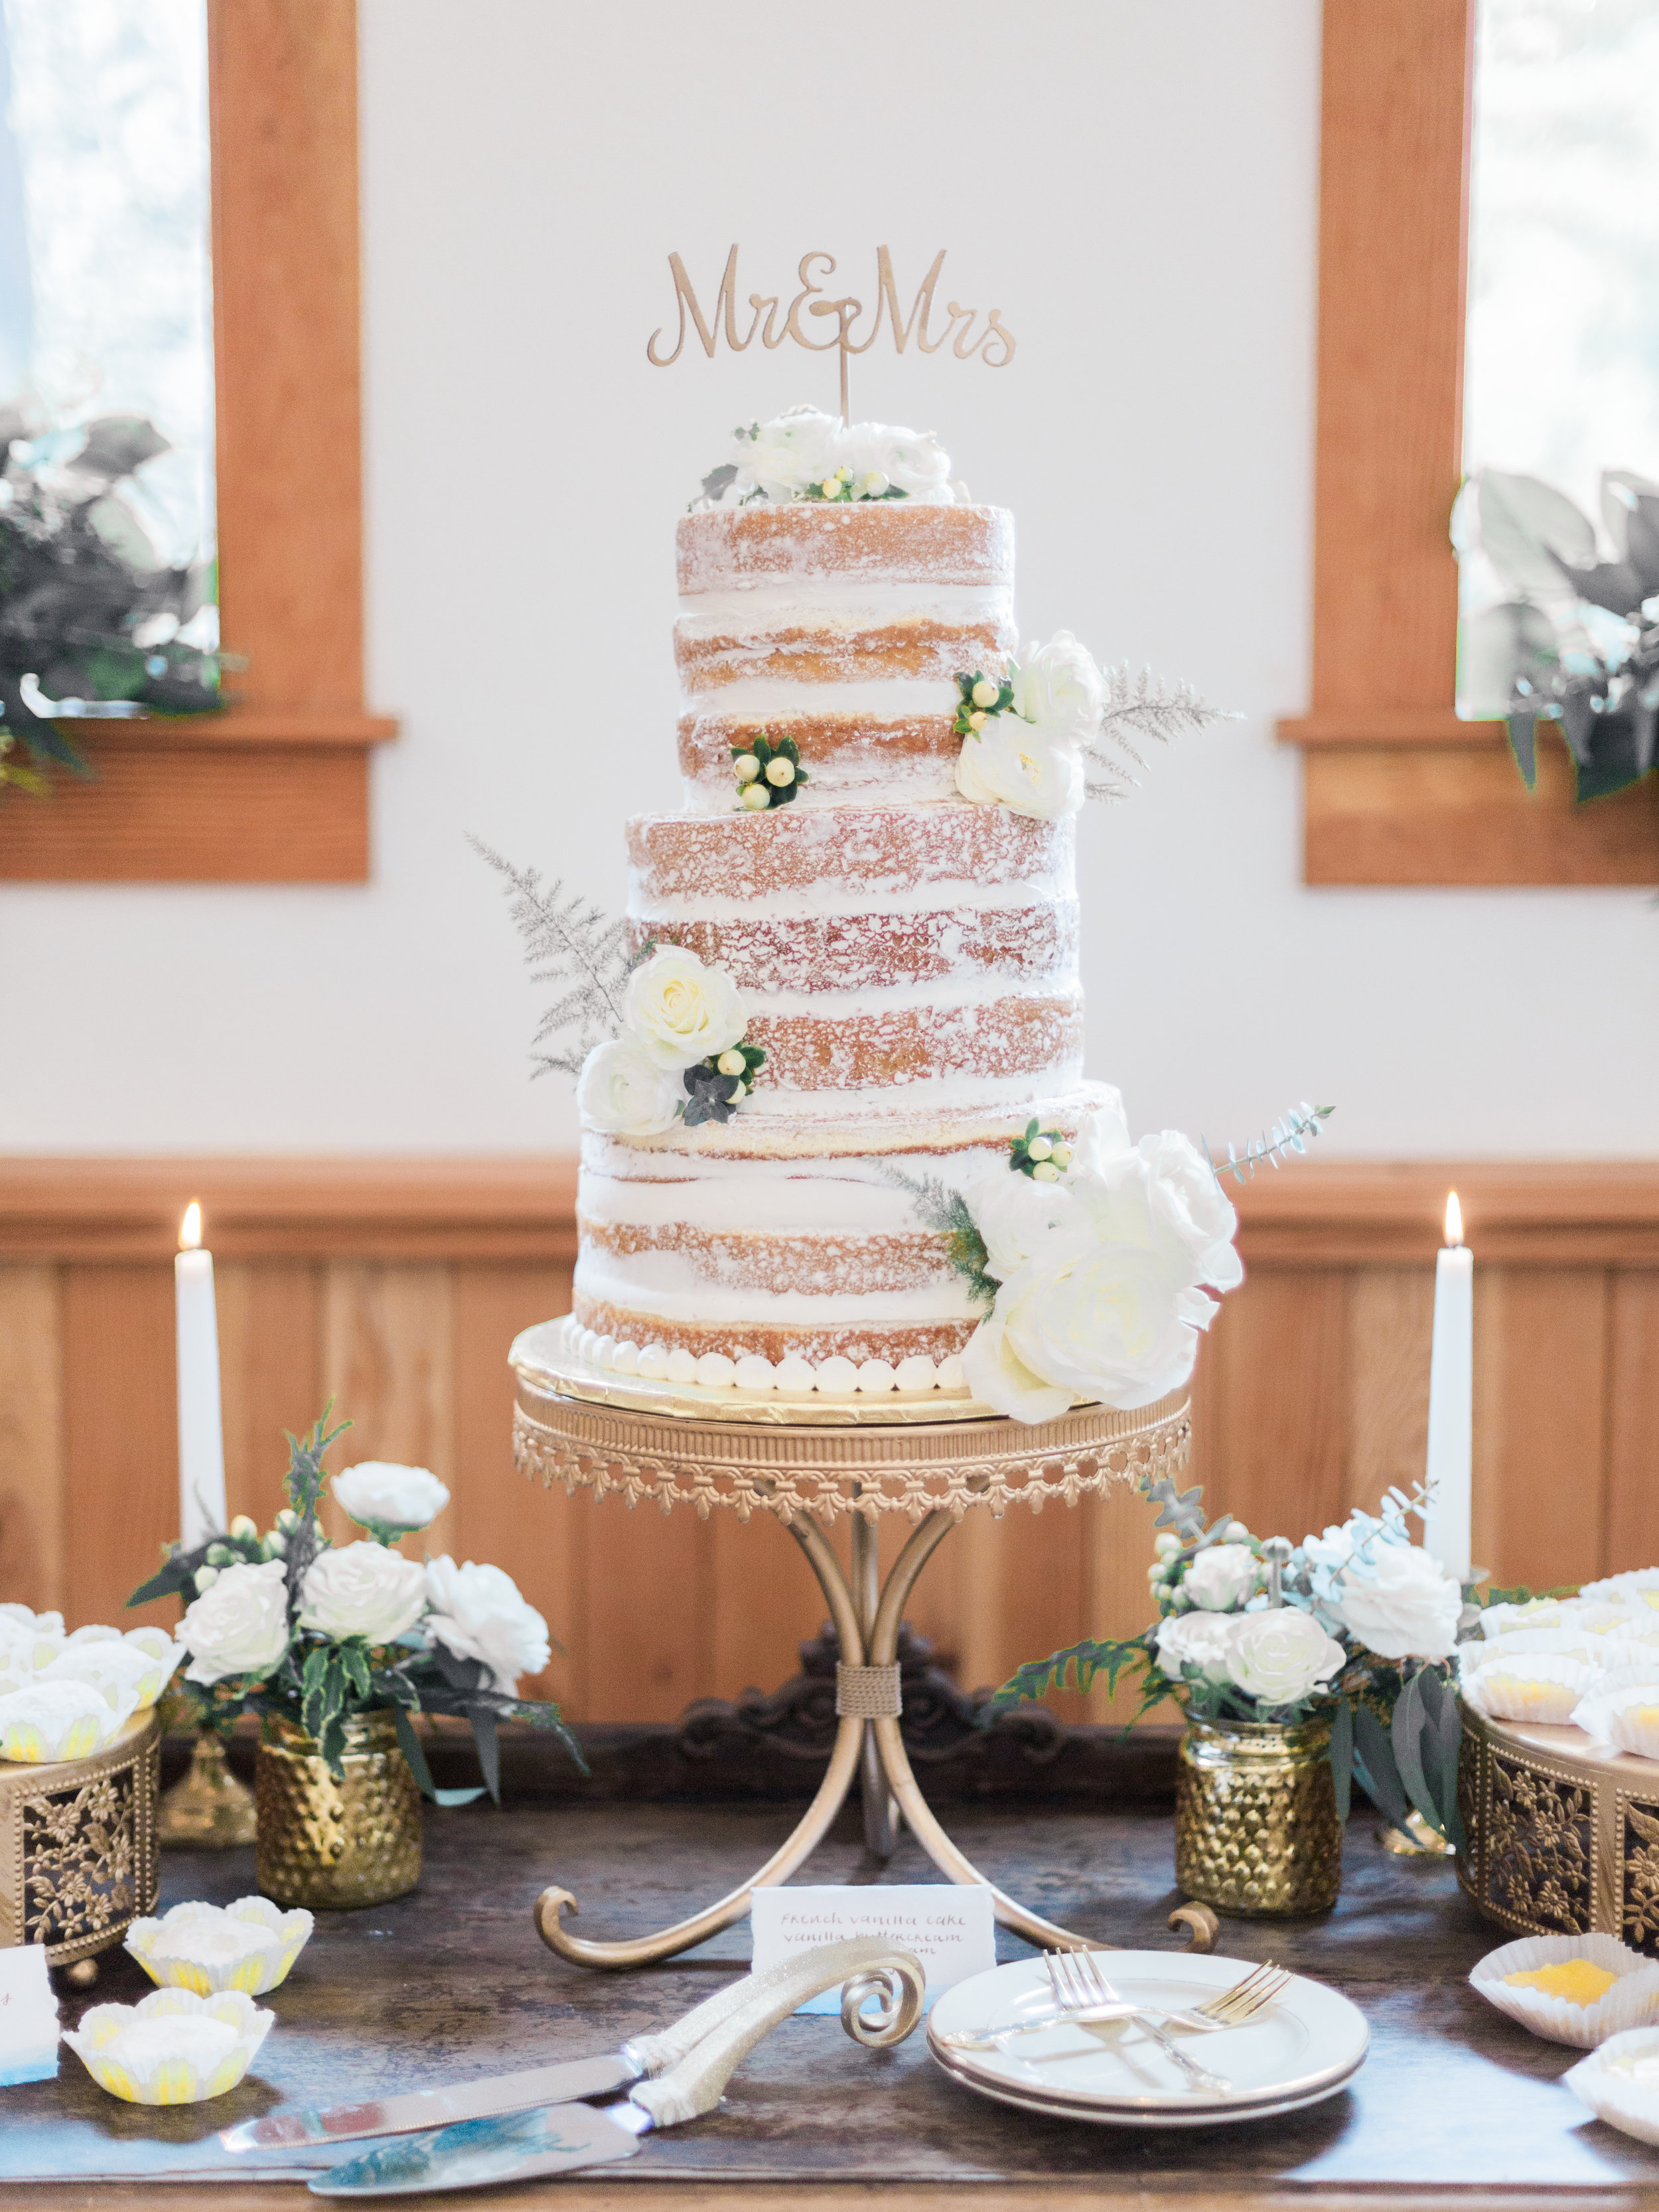 Cake & Desserts | Soft Peaks Cakery  Photography | Ava Maria Photography  Planning & Styling | To Be Loved Events & Anela Events  Rentals | Danner and Soli  Floral Design | Flowers & Thyme